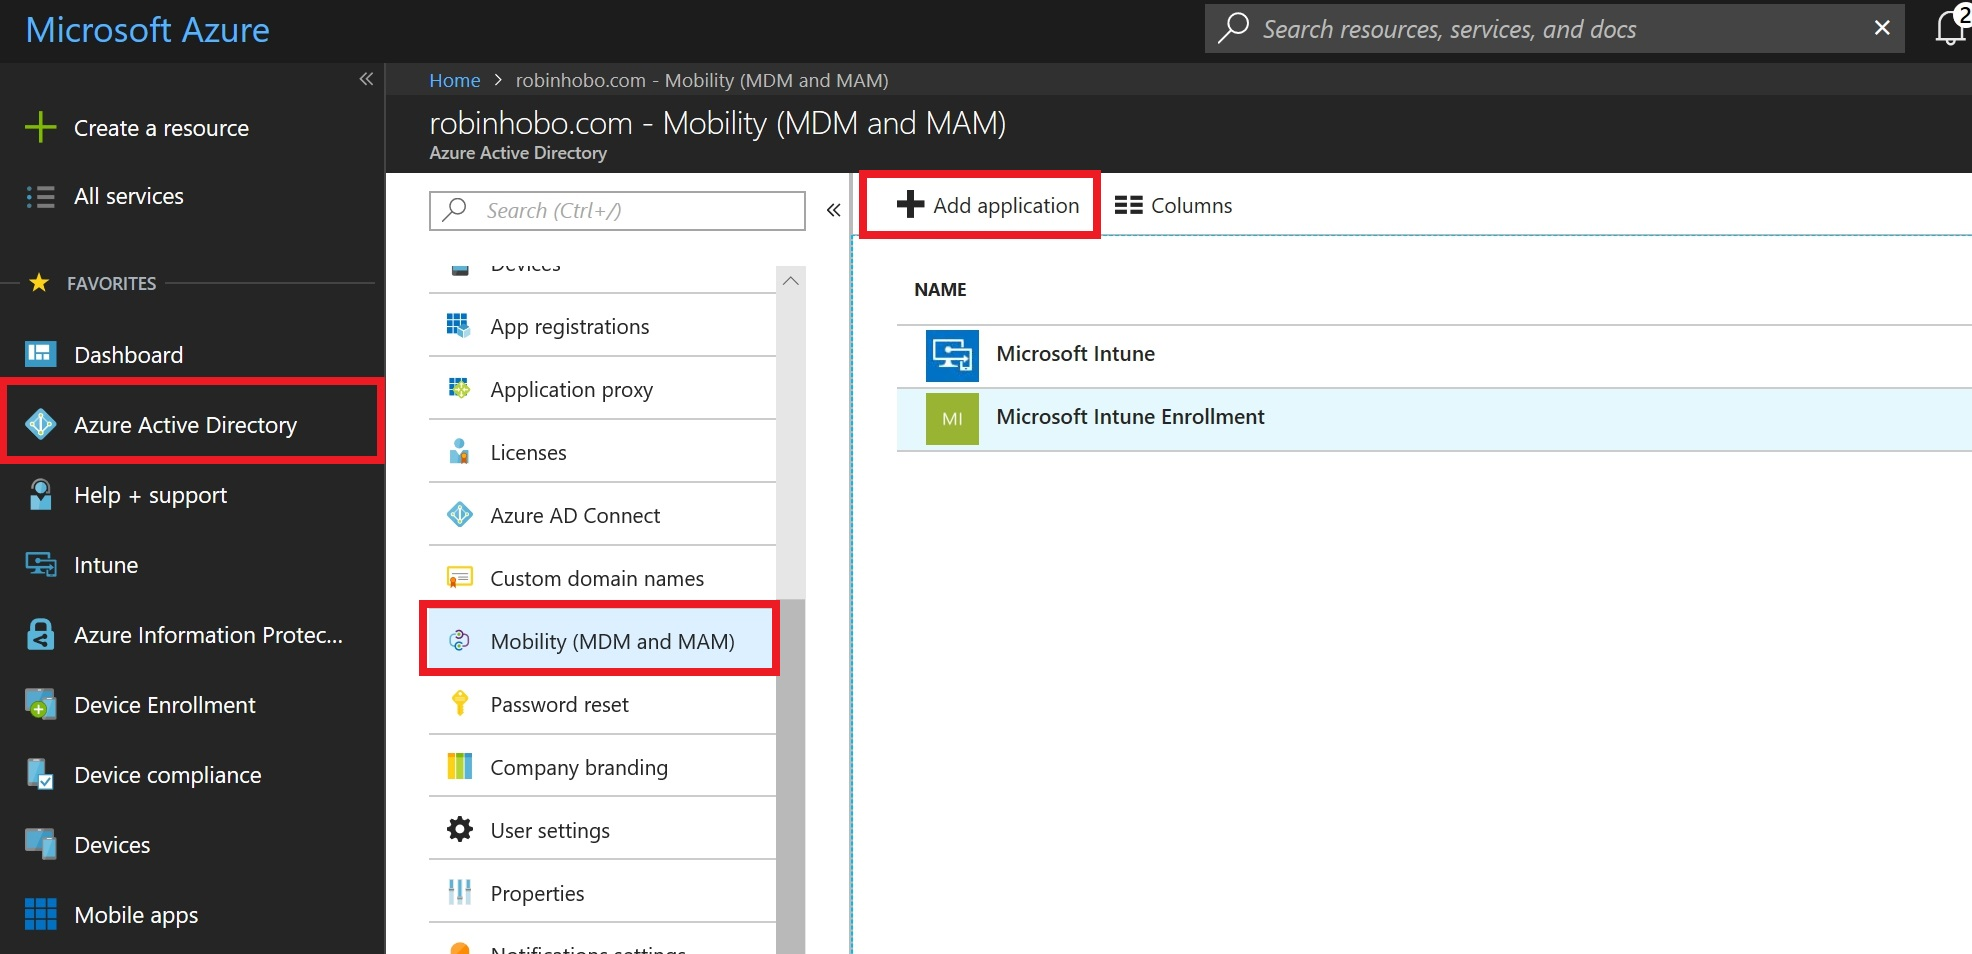 How to integrate Citrix XenMobile with Azure AD for auto enrollment